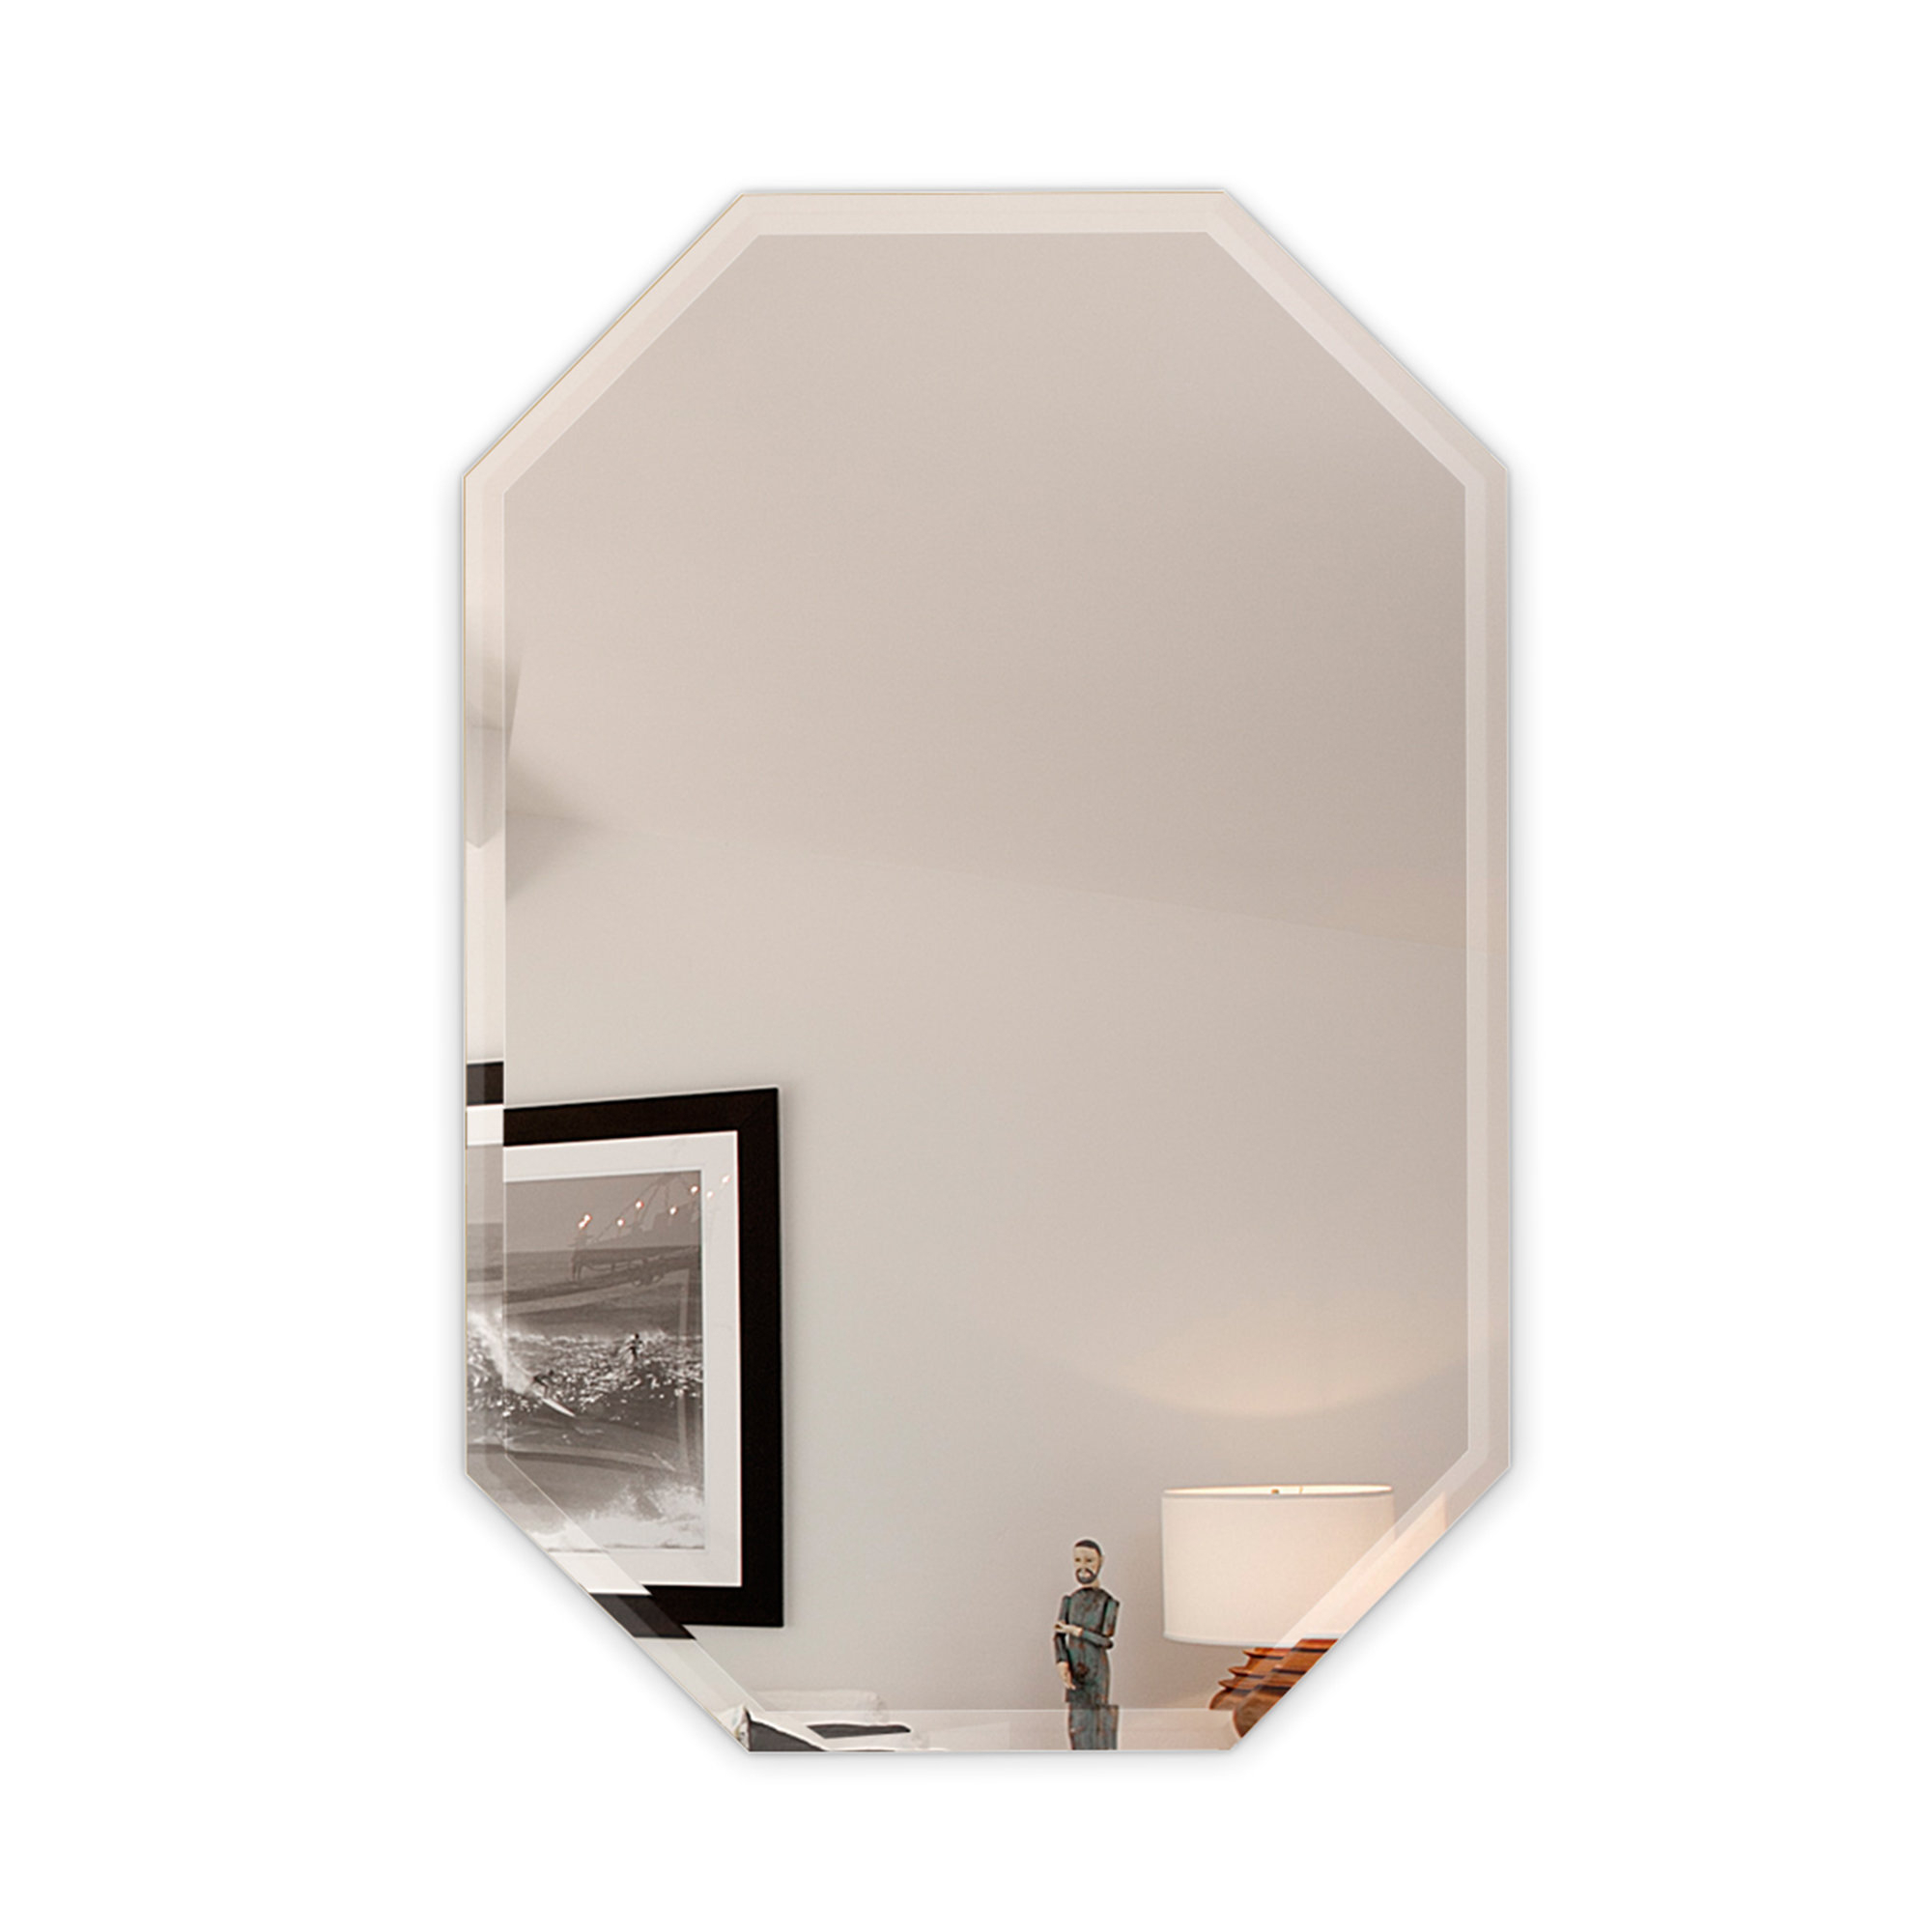 Most Recent Frameless Wall Mirrors Intended For Octagon Frameless Wall Mirror With 3 Hooks (View 18 of 20)